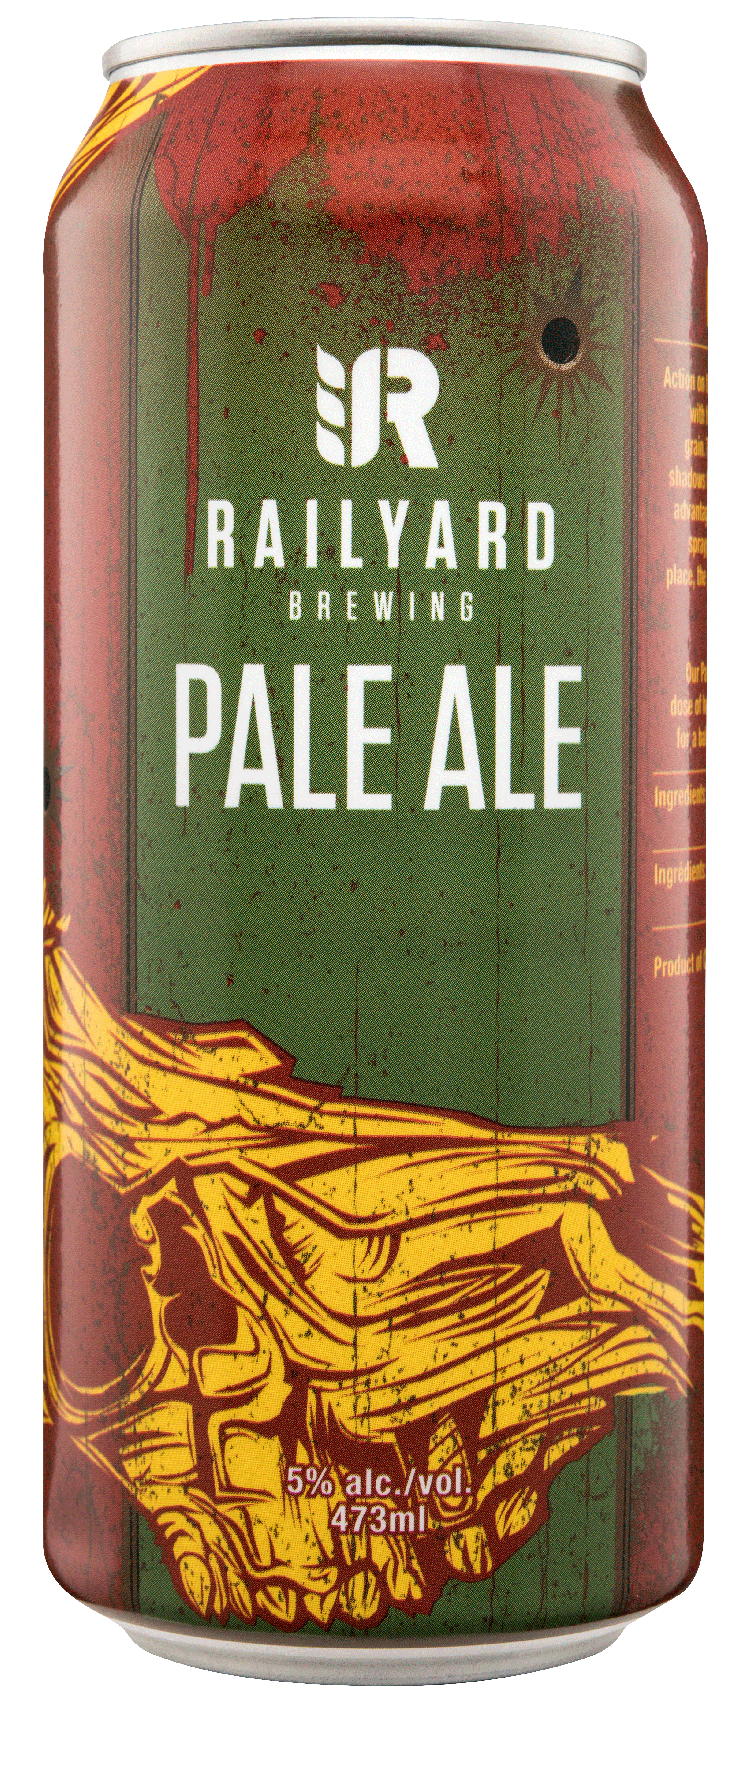 RAILYARD PALE ALE   An ode to the English Pale & where it started. A meld of British & north western hops with a caramel malt backbone to balance. Hazy, earthy, with a hint of citrus and dried out just enough to make sure you are getting on board for until the last stop.